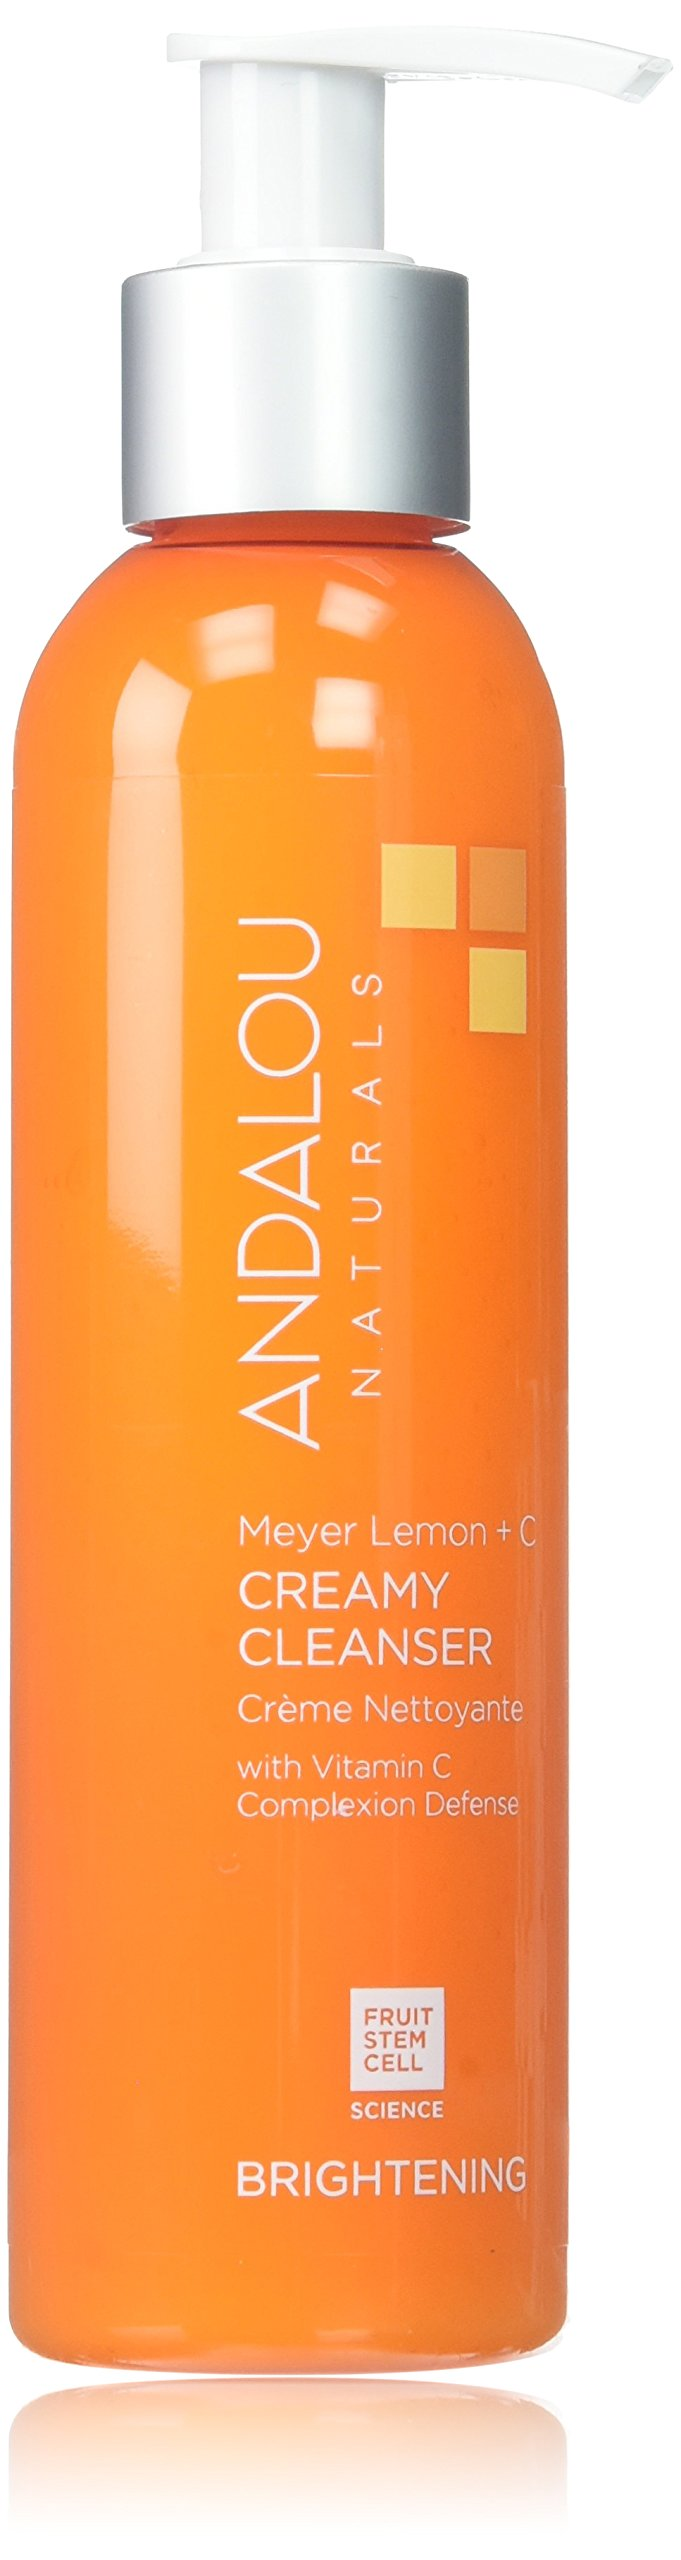 Andalou Naturals Meyer Creamy Lemon Cleanser, 6 oz, Helps Clean, Purify, Brighten & Even Skin Tone, With Vitamin C